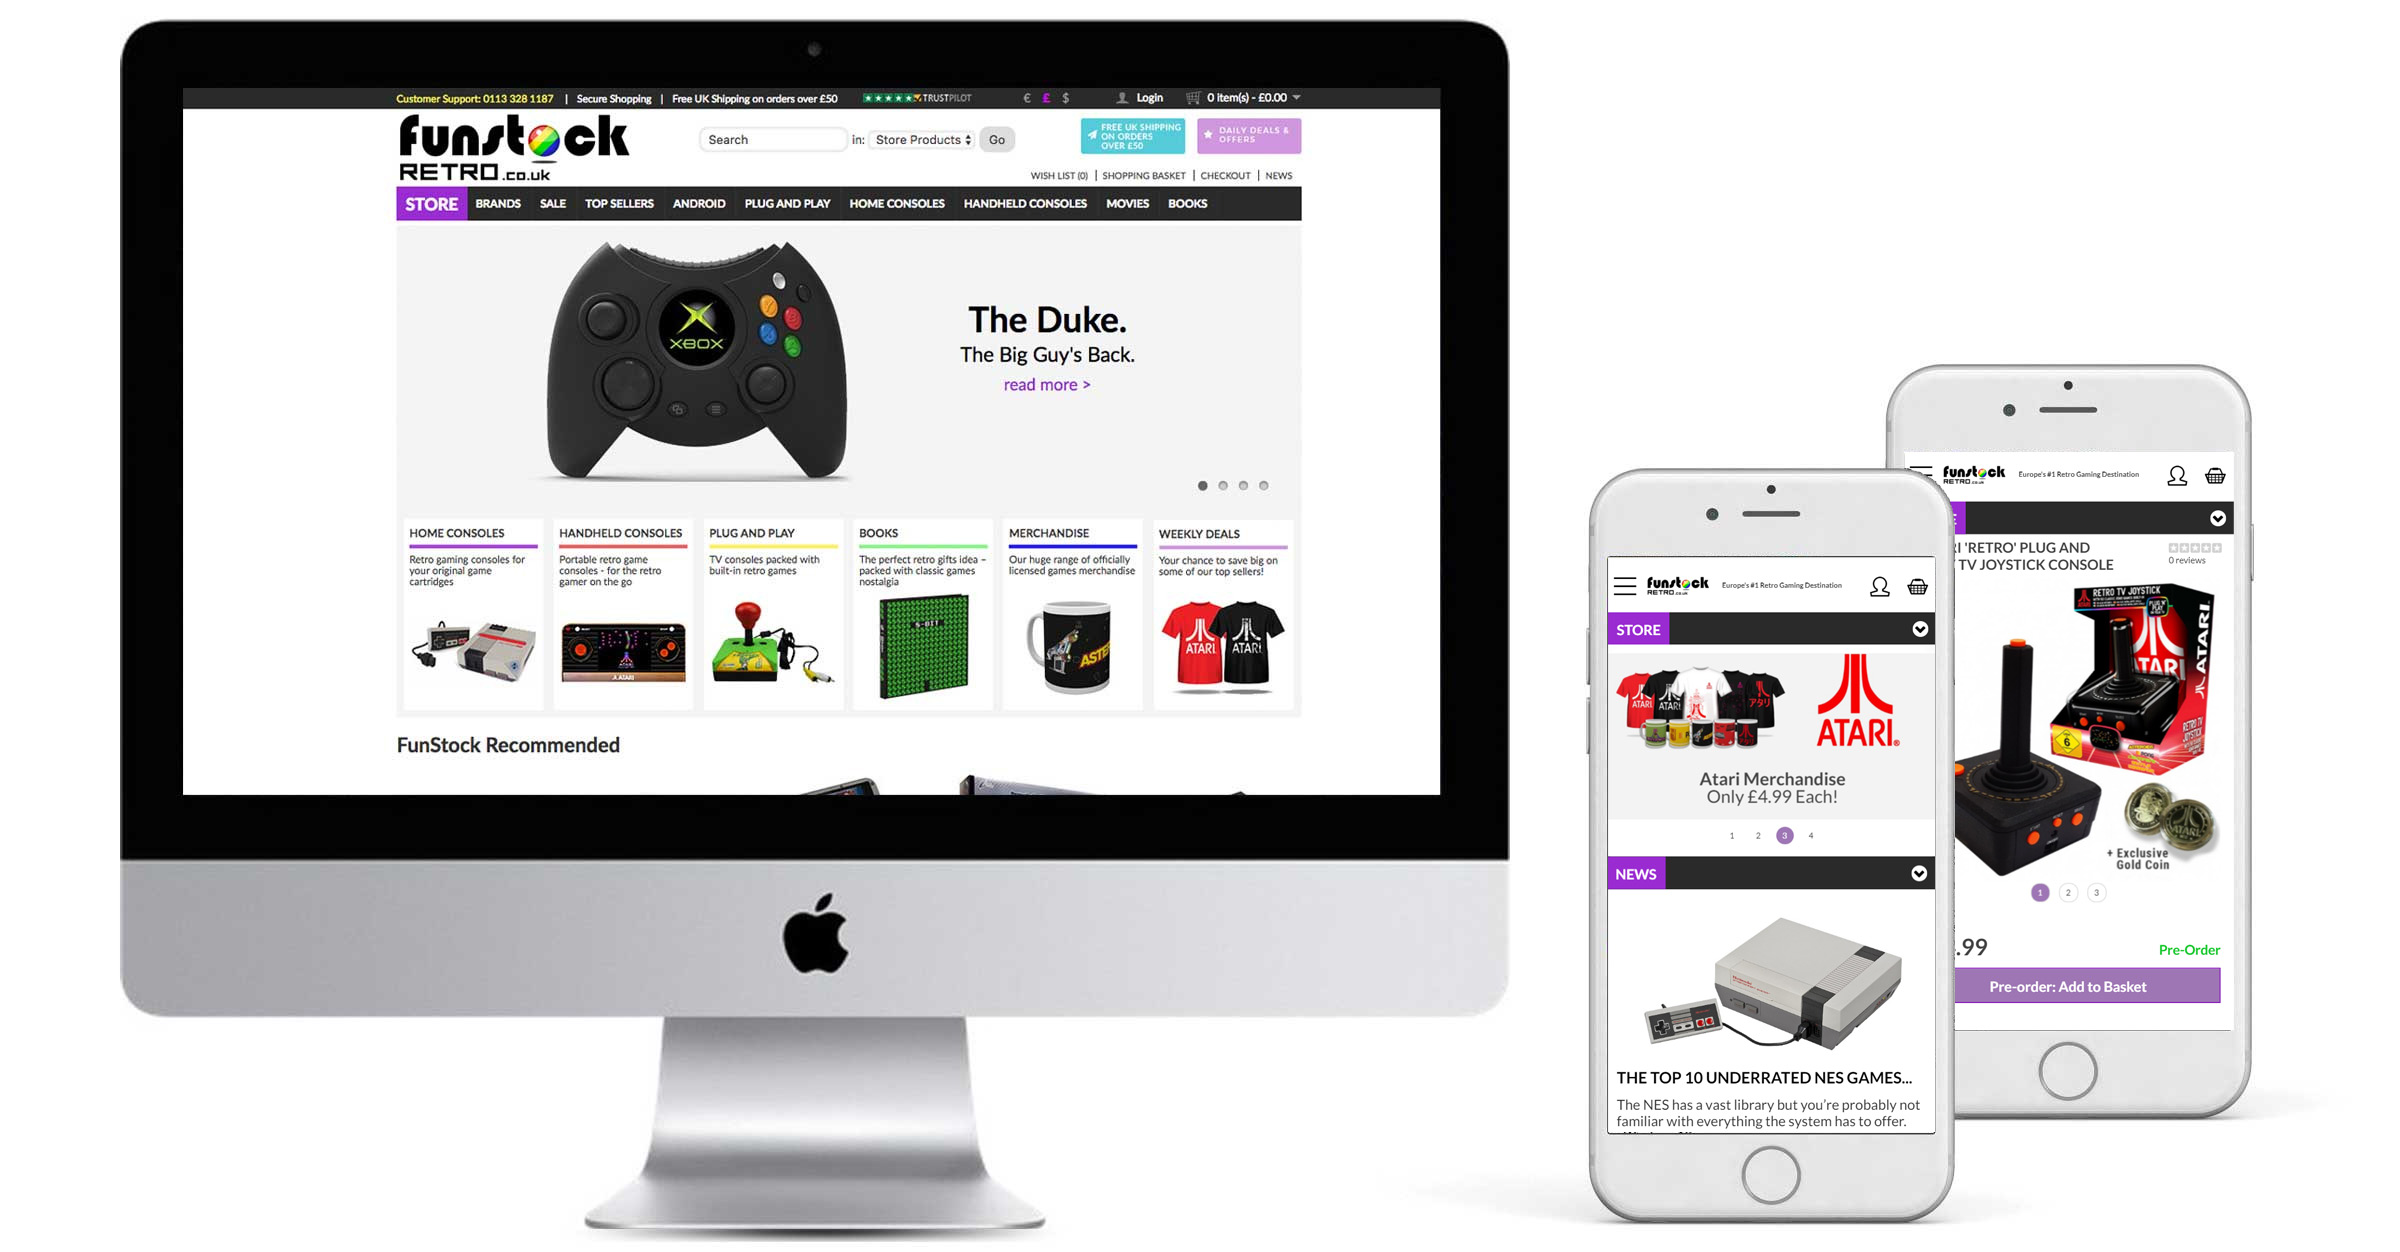 Funstock Retro - Website Design Display Desktop & Mobile